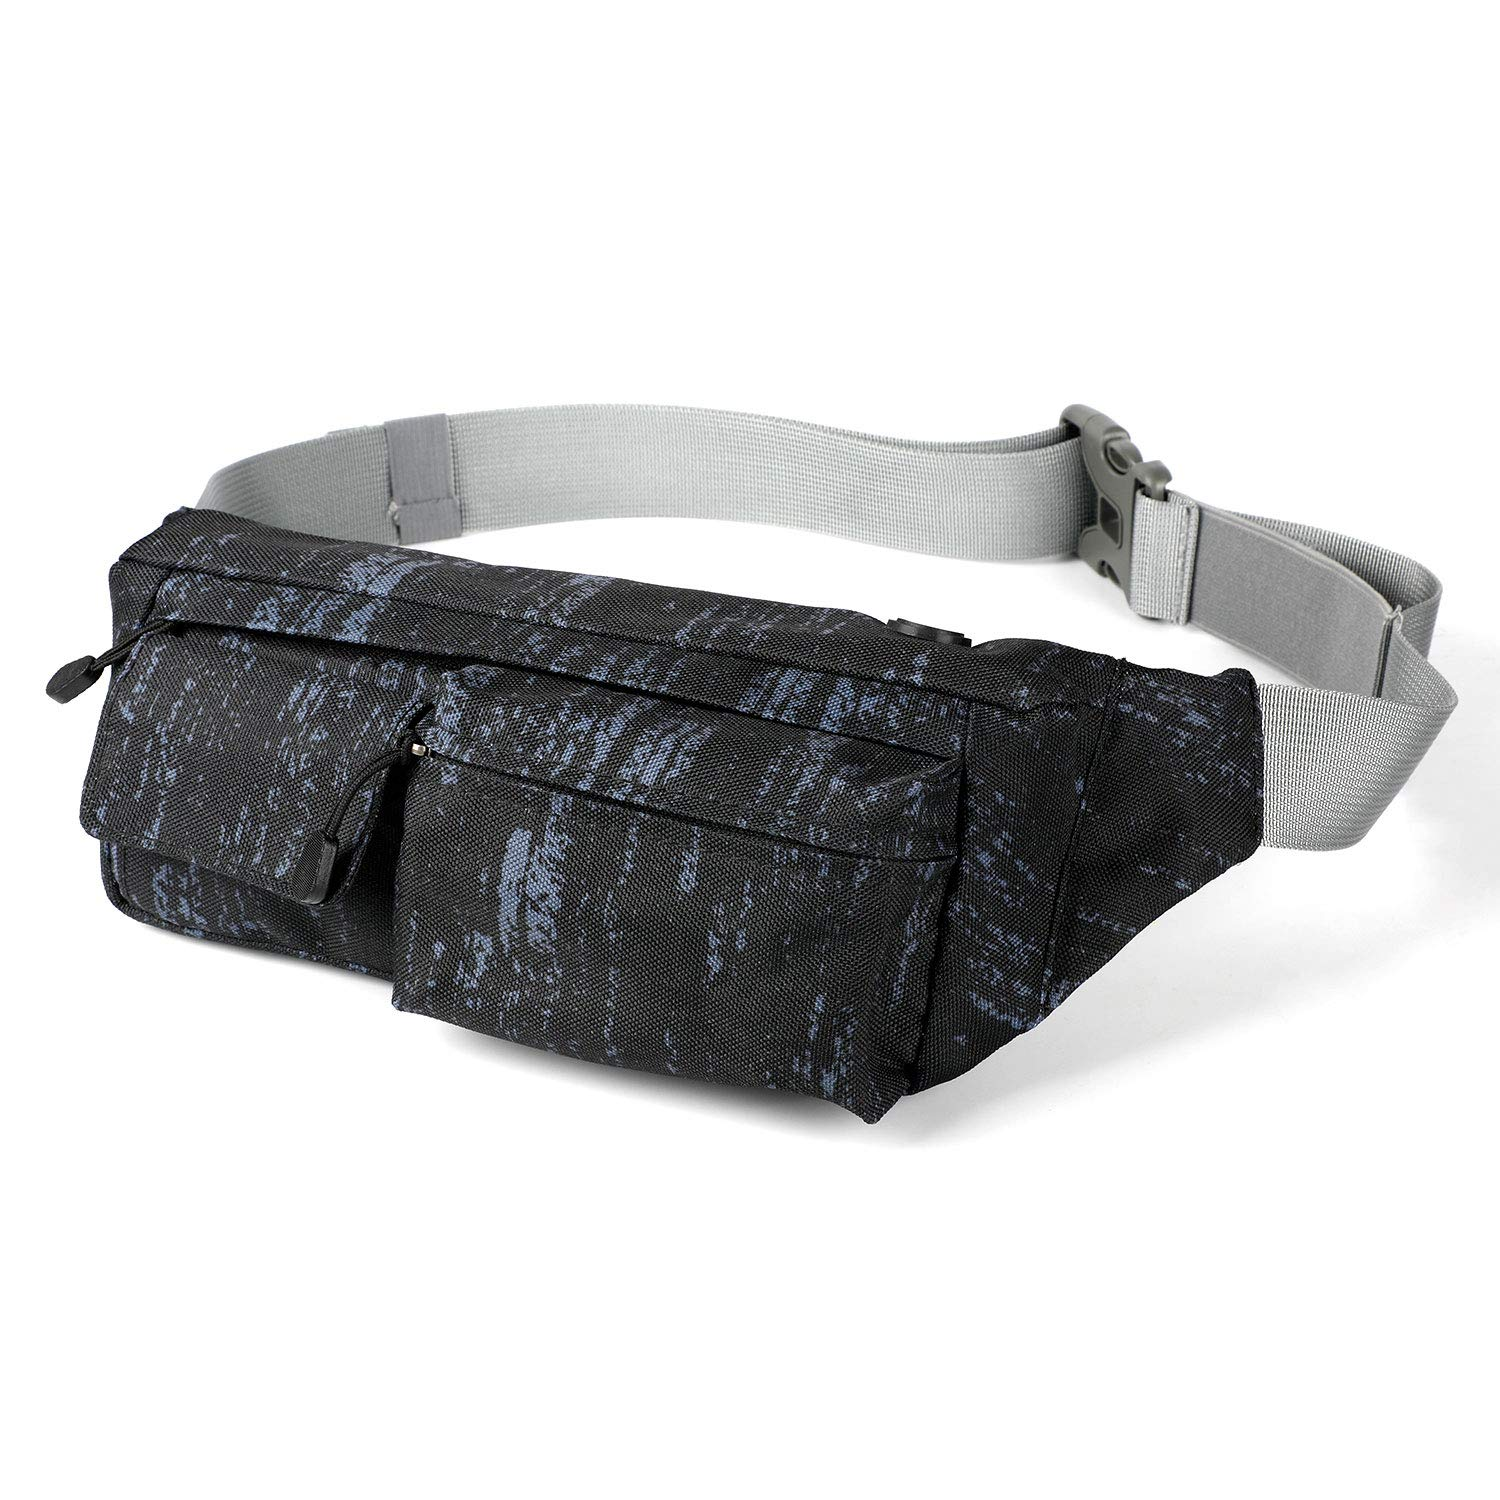 Osportfun Running Belt Waist Bag Fanny Pack for Men Women – Ultra Light Hiking Pouch Fitness Workout Sport Waist Pack Exercise Belt Bag for All Kinds of Phones